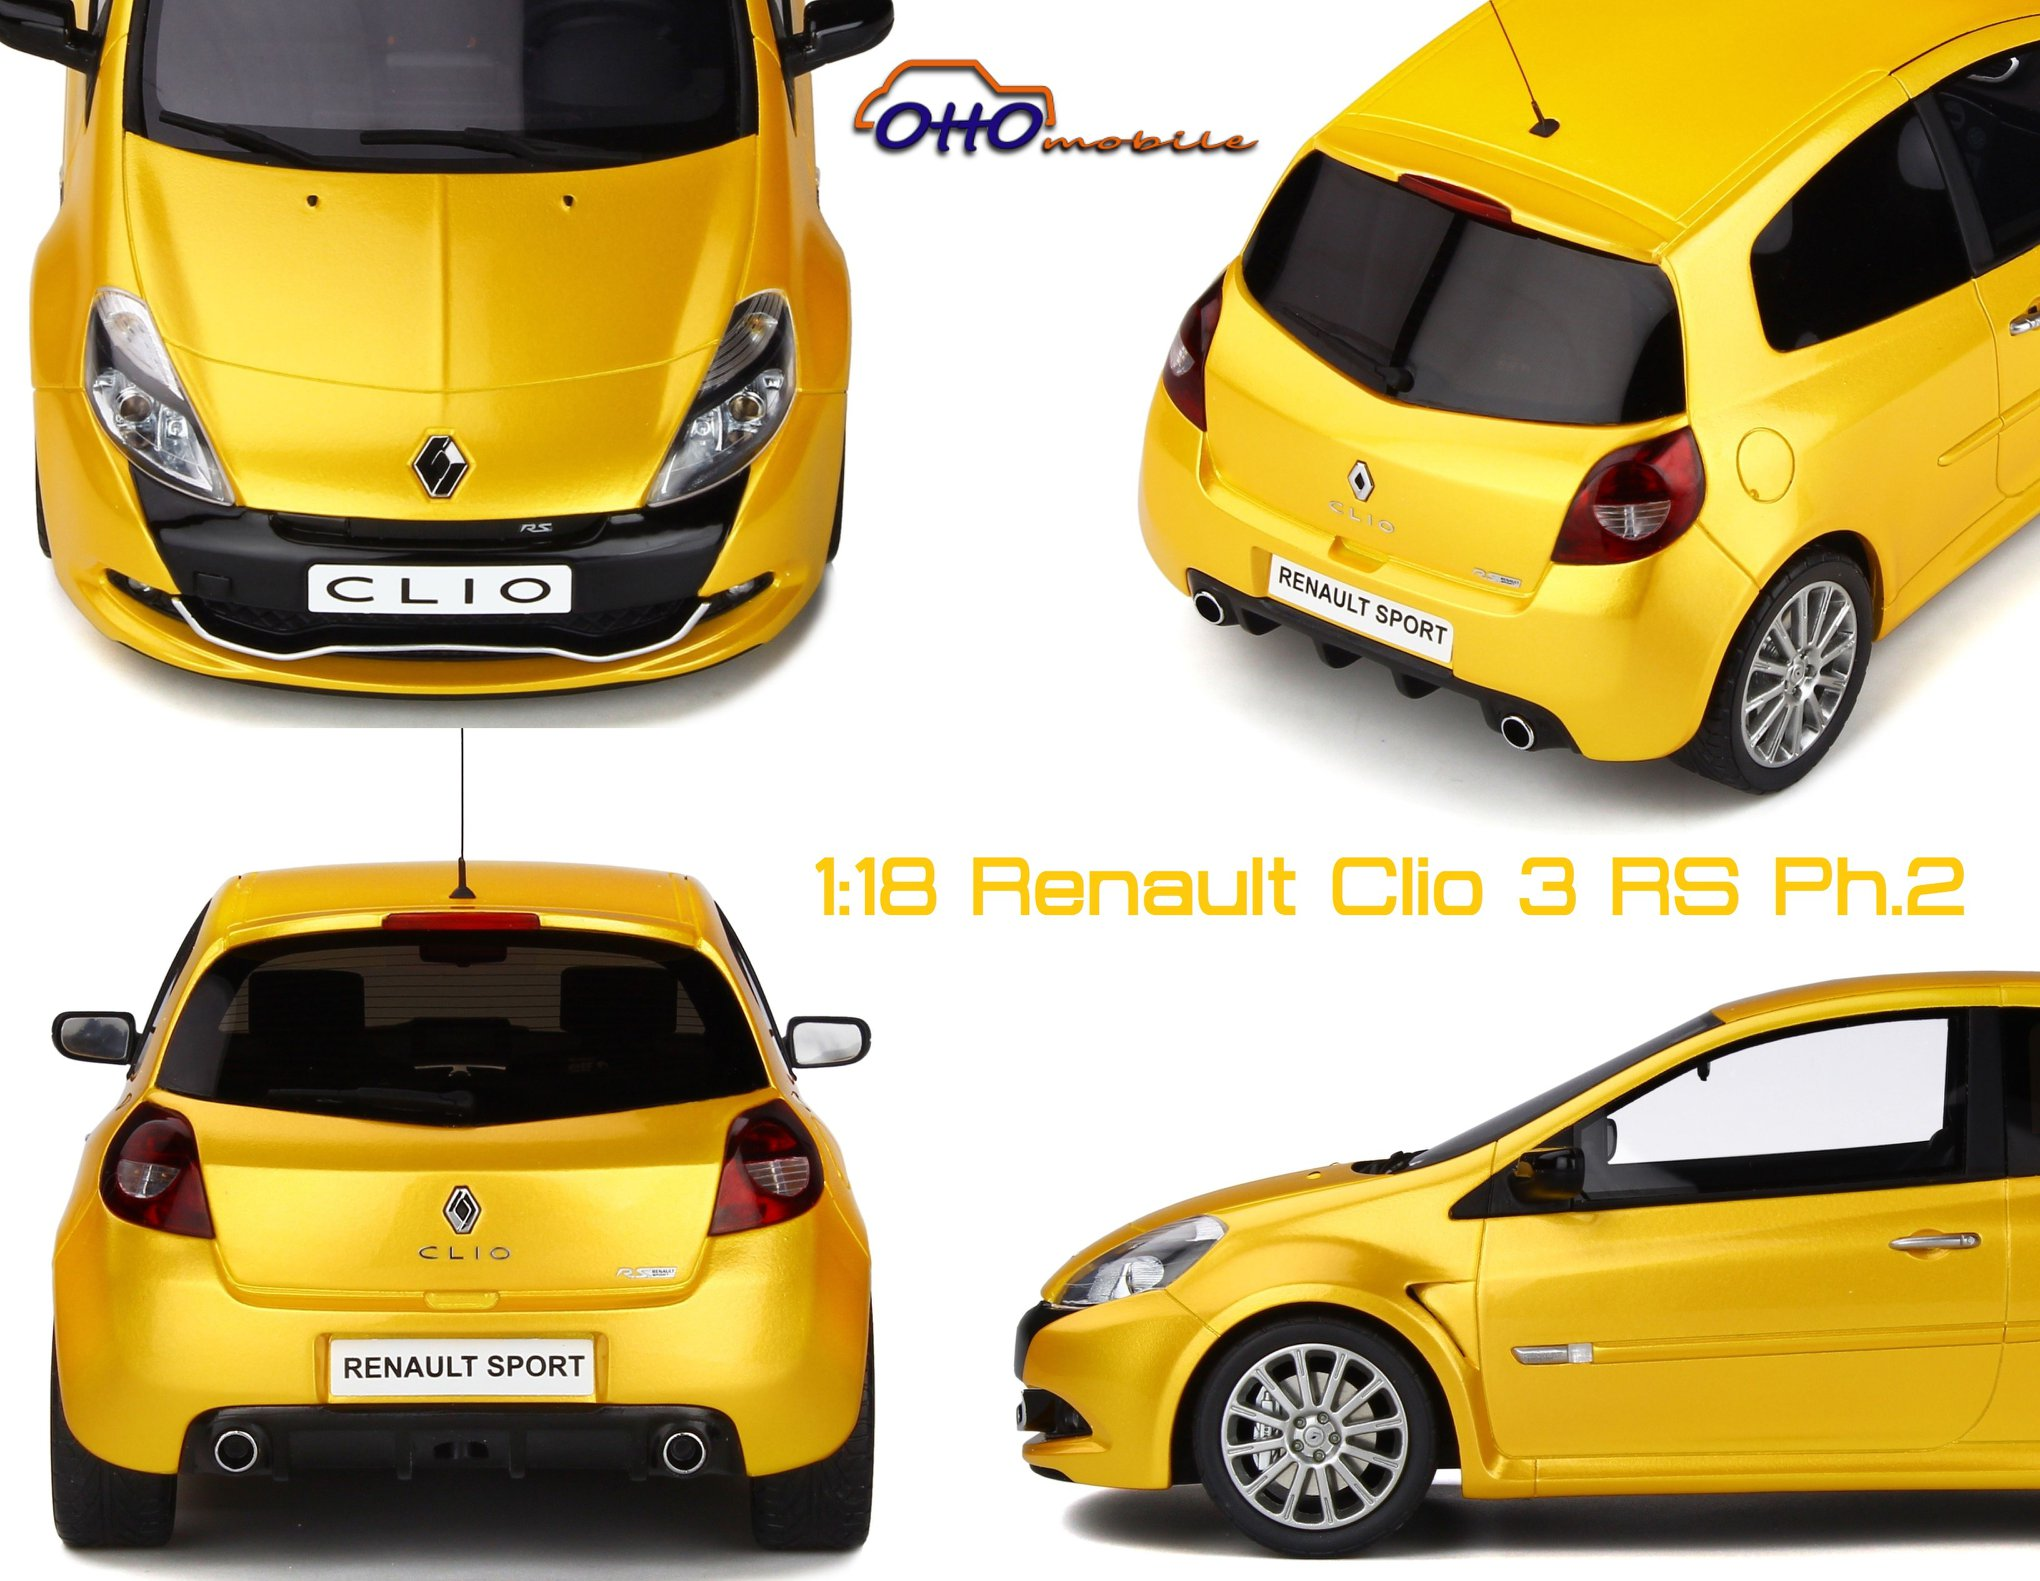 renault-clio-3-rs-ottomobile